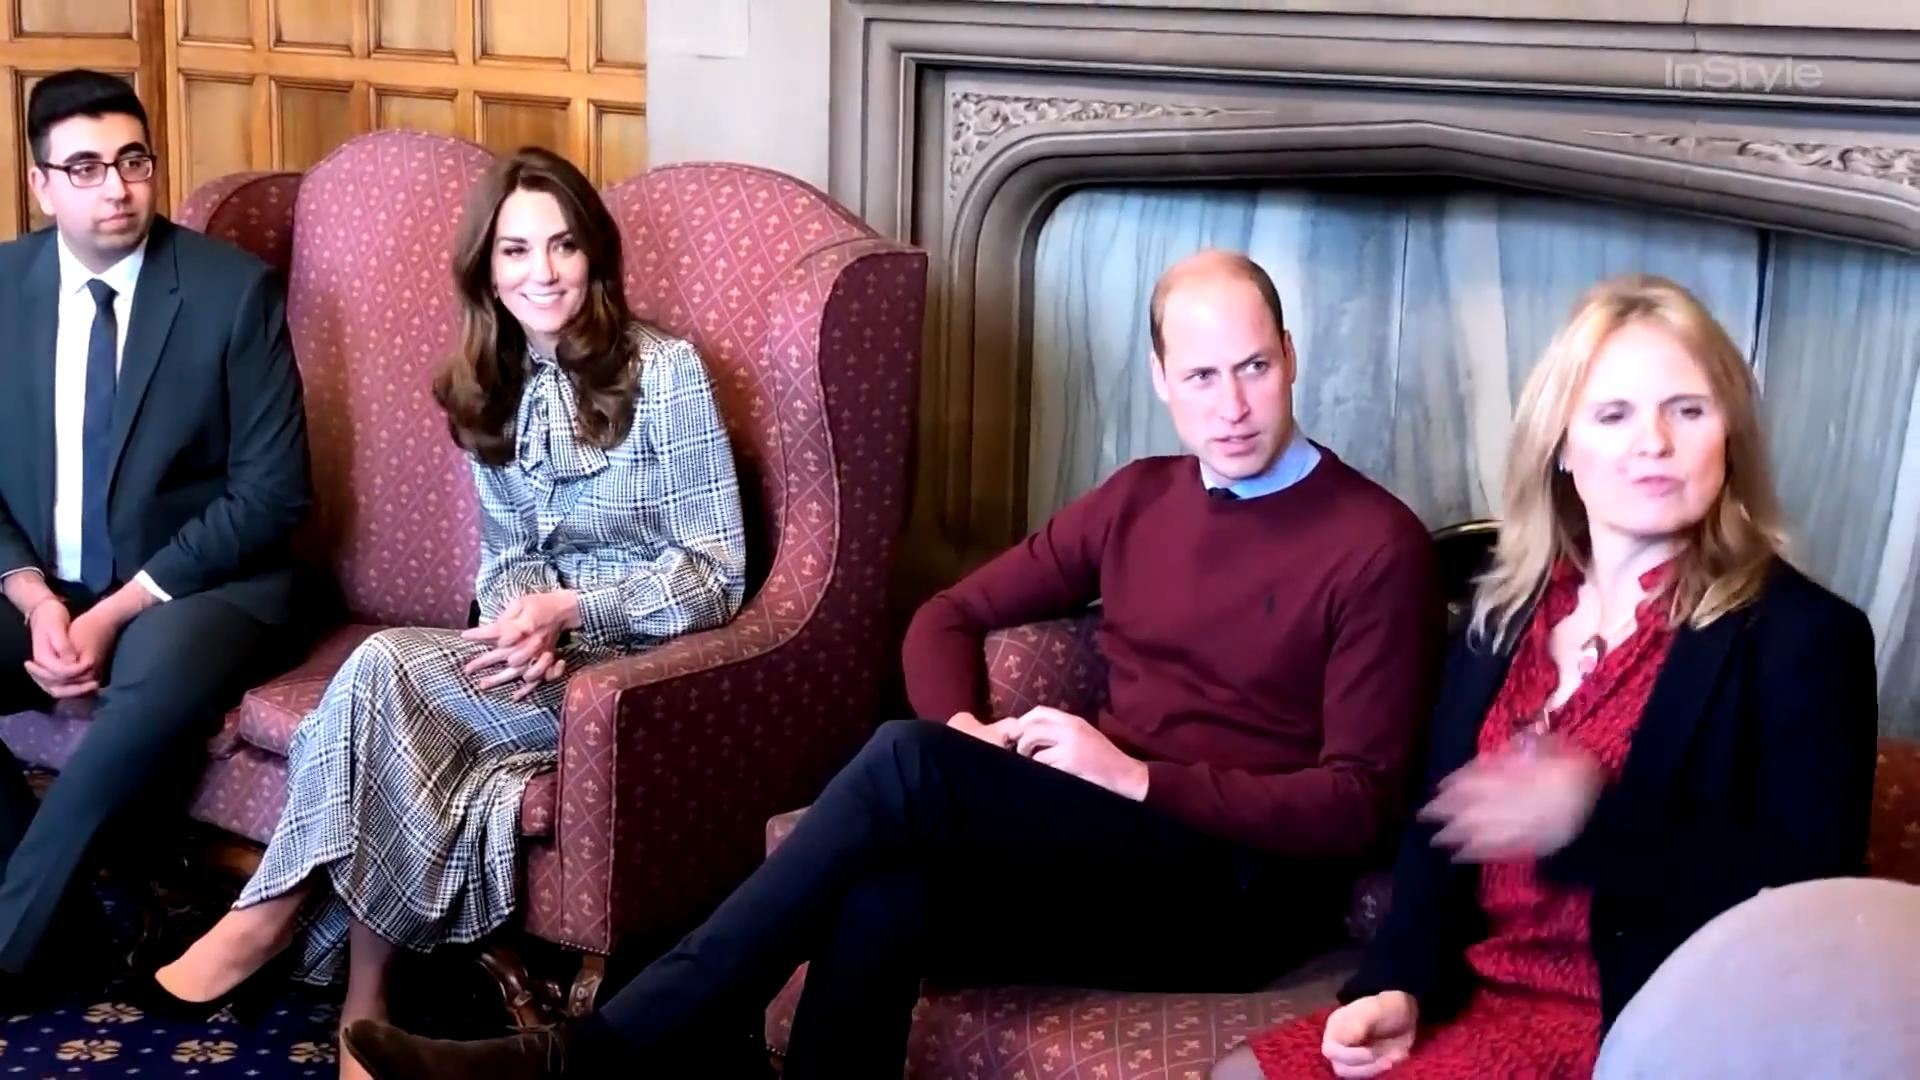 Kate Middleton told a royal fan that Prince William doesn't want a fourth child: report